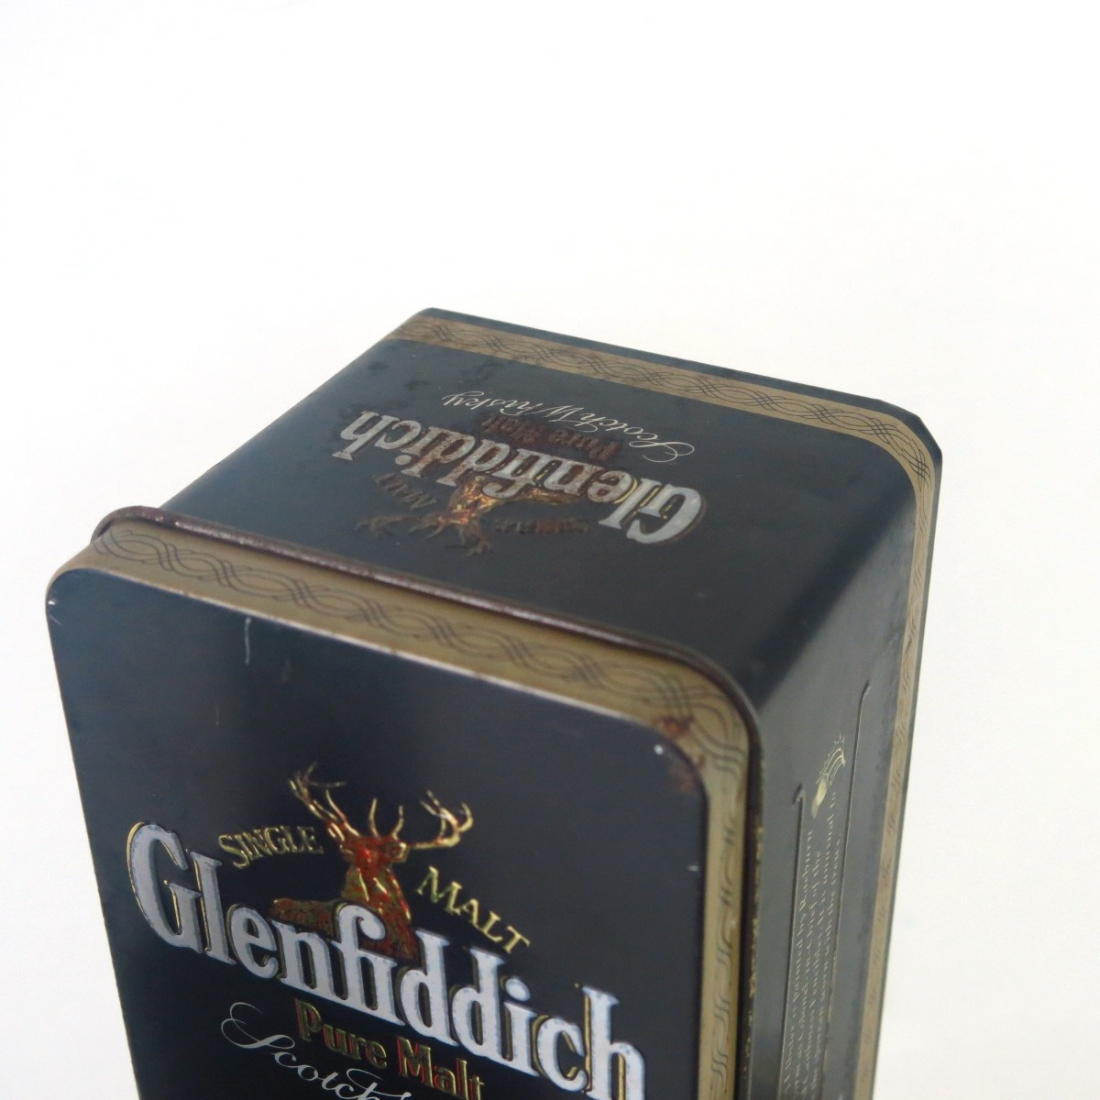 Glenfiddich Clans of the Highlands / Clan Sinclair Including Matching Miniature